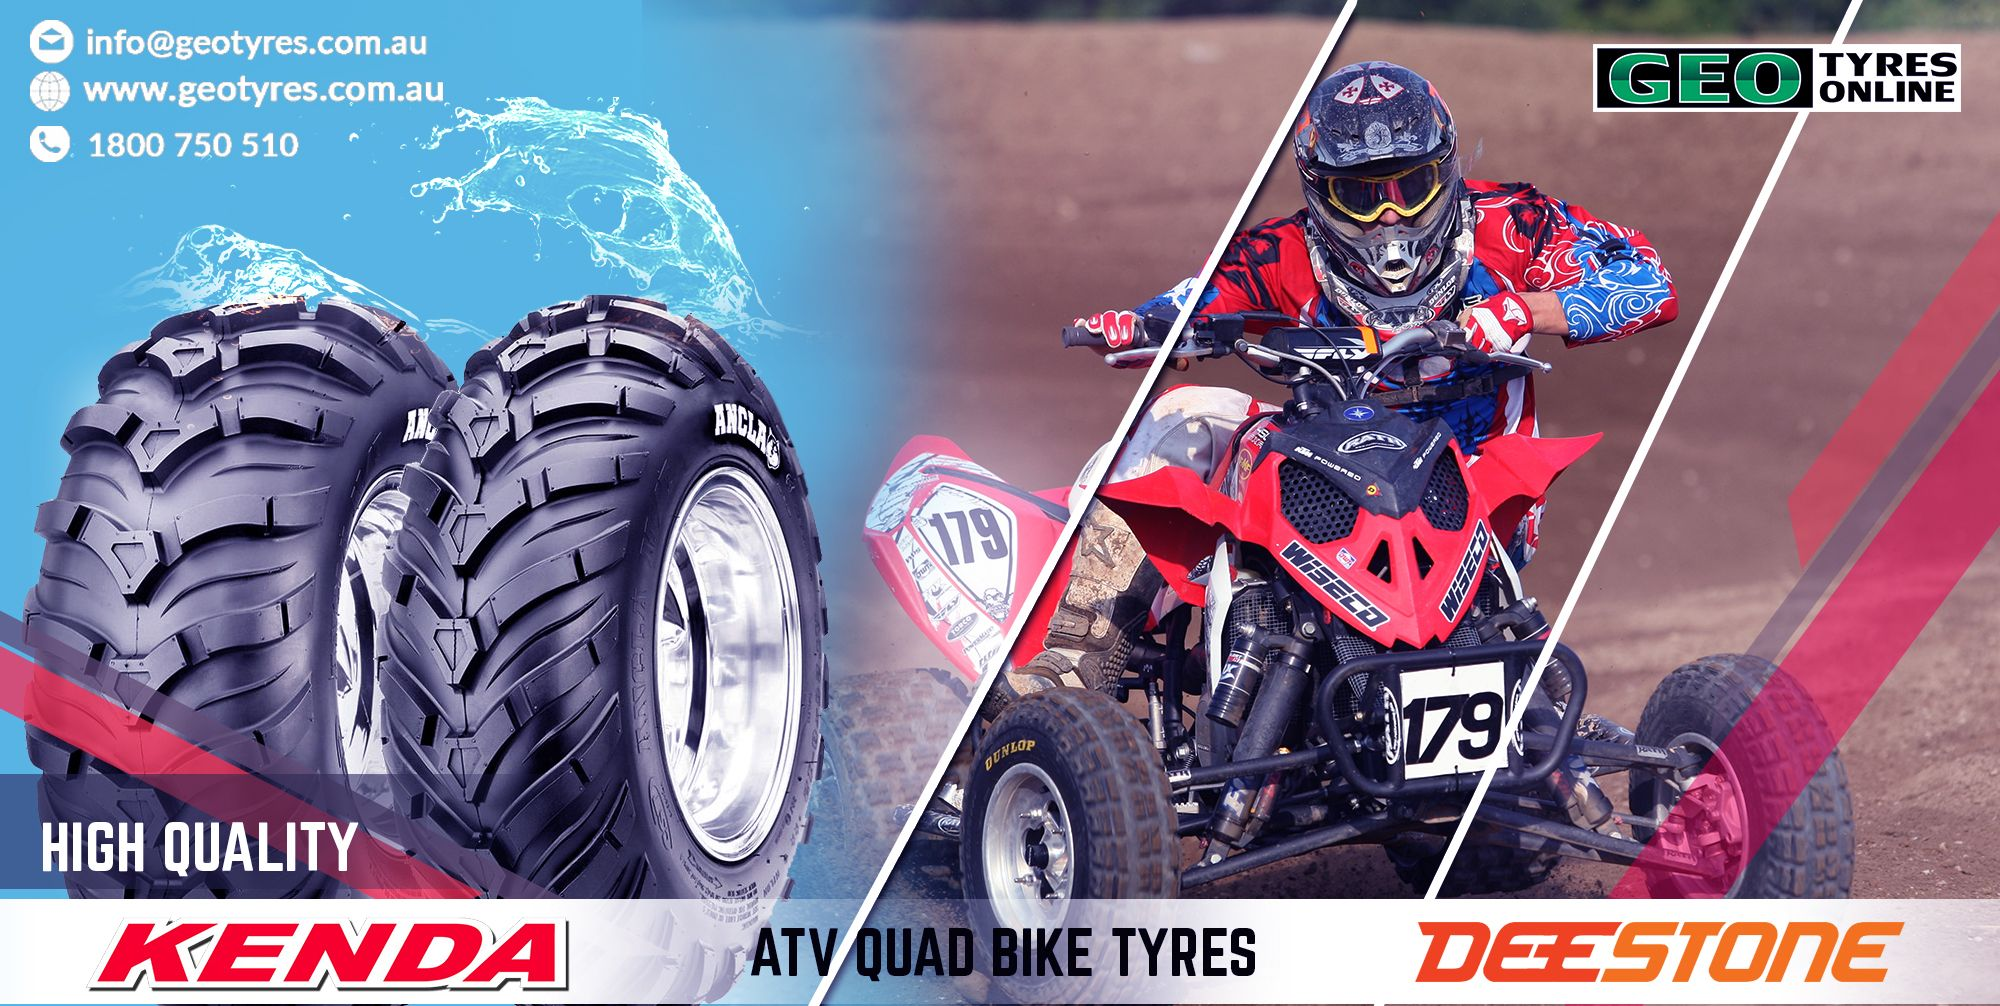 Geo Offers The Best Range Of Tyres For Atvs Quad Bikes Top